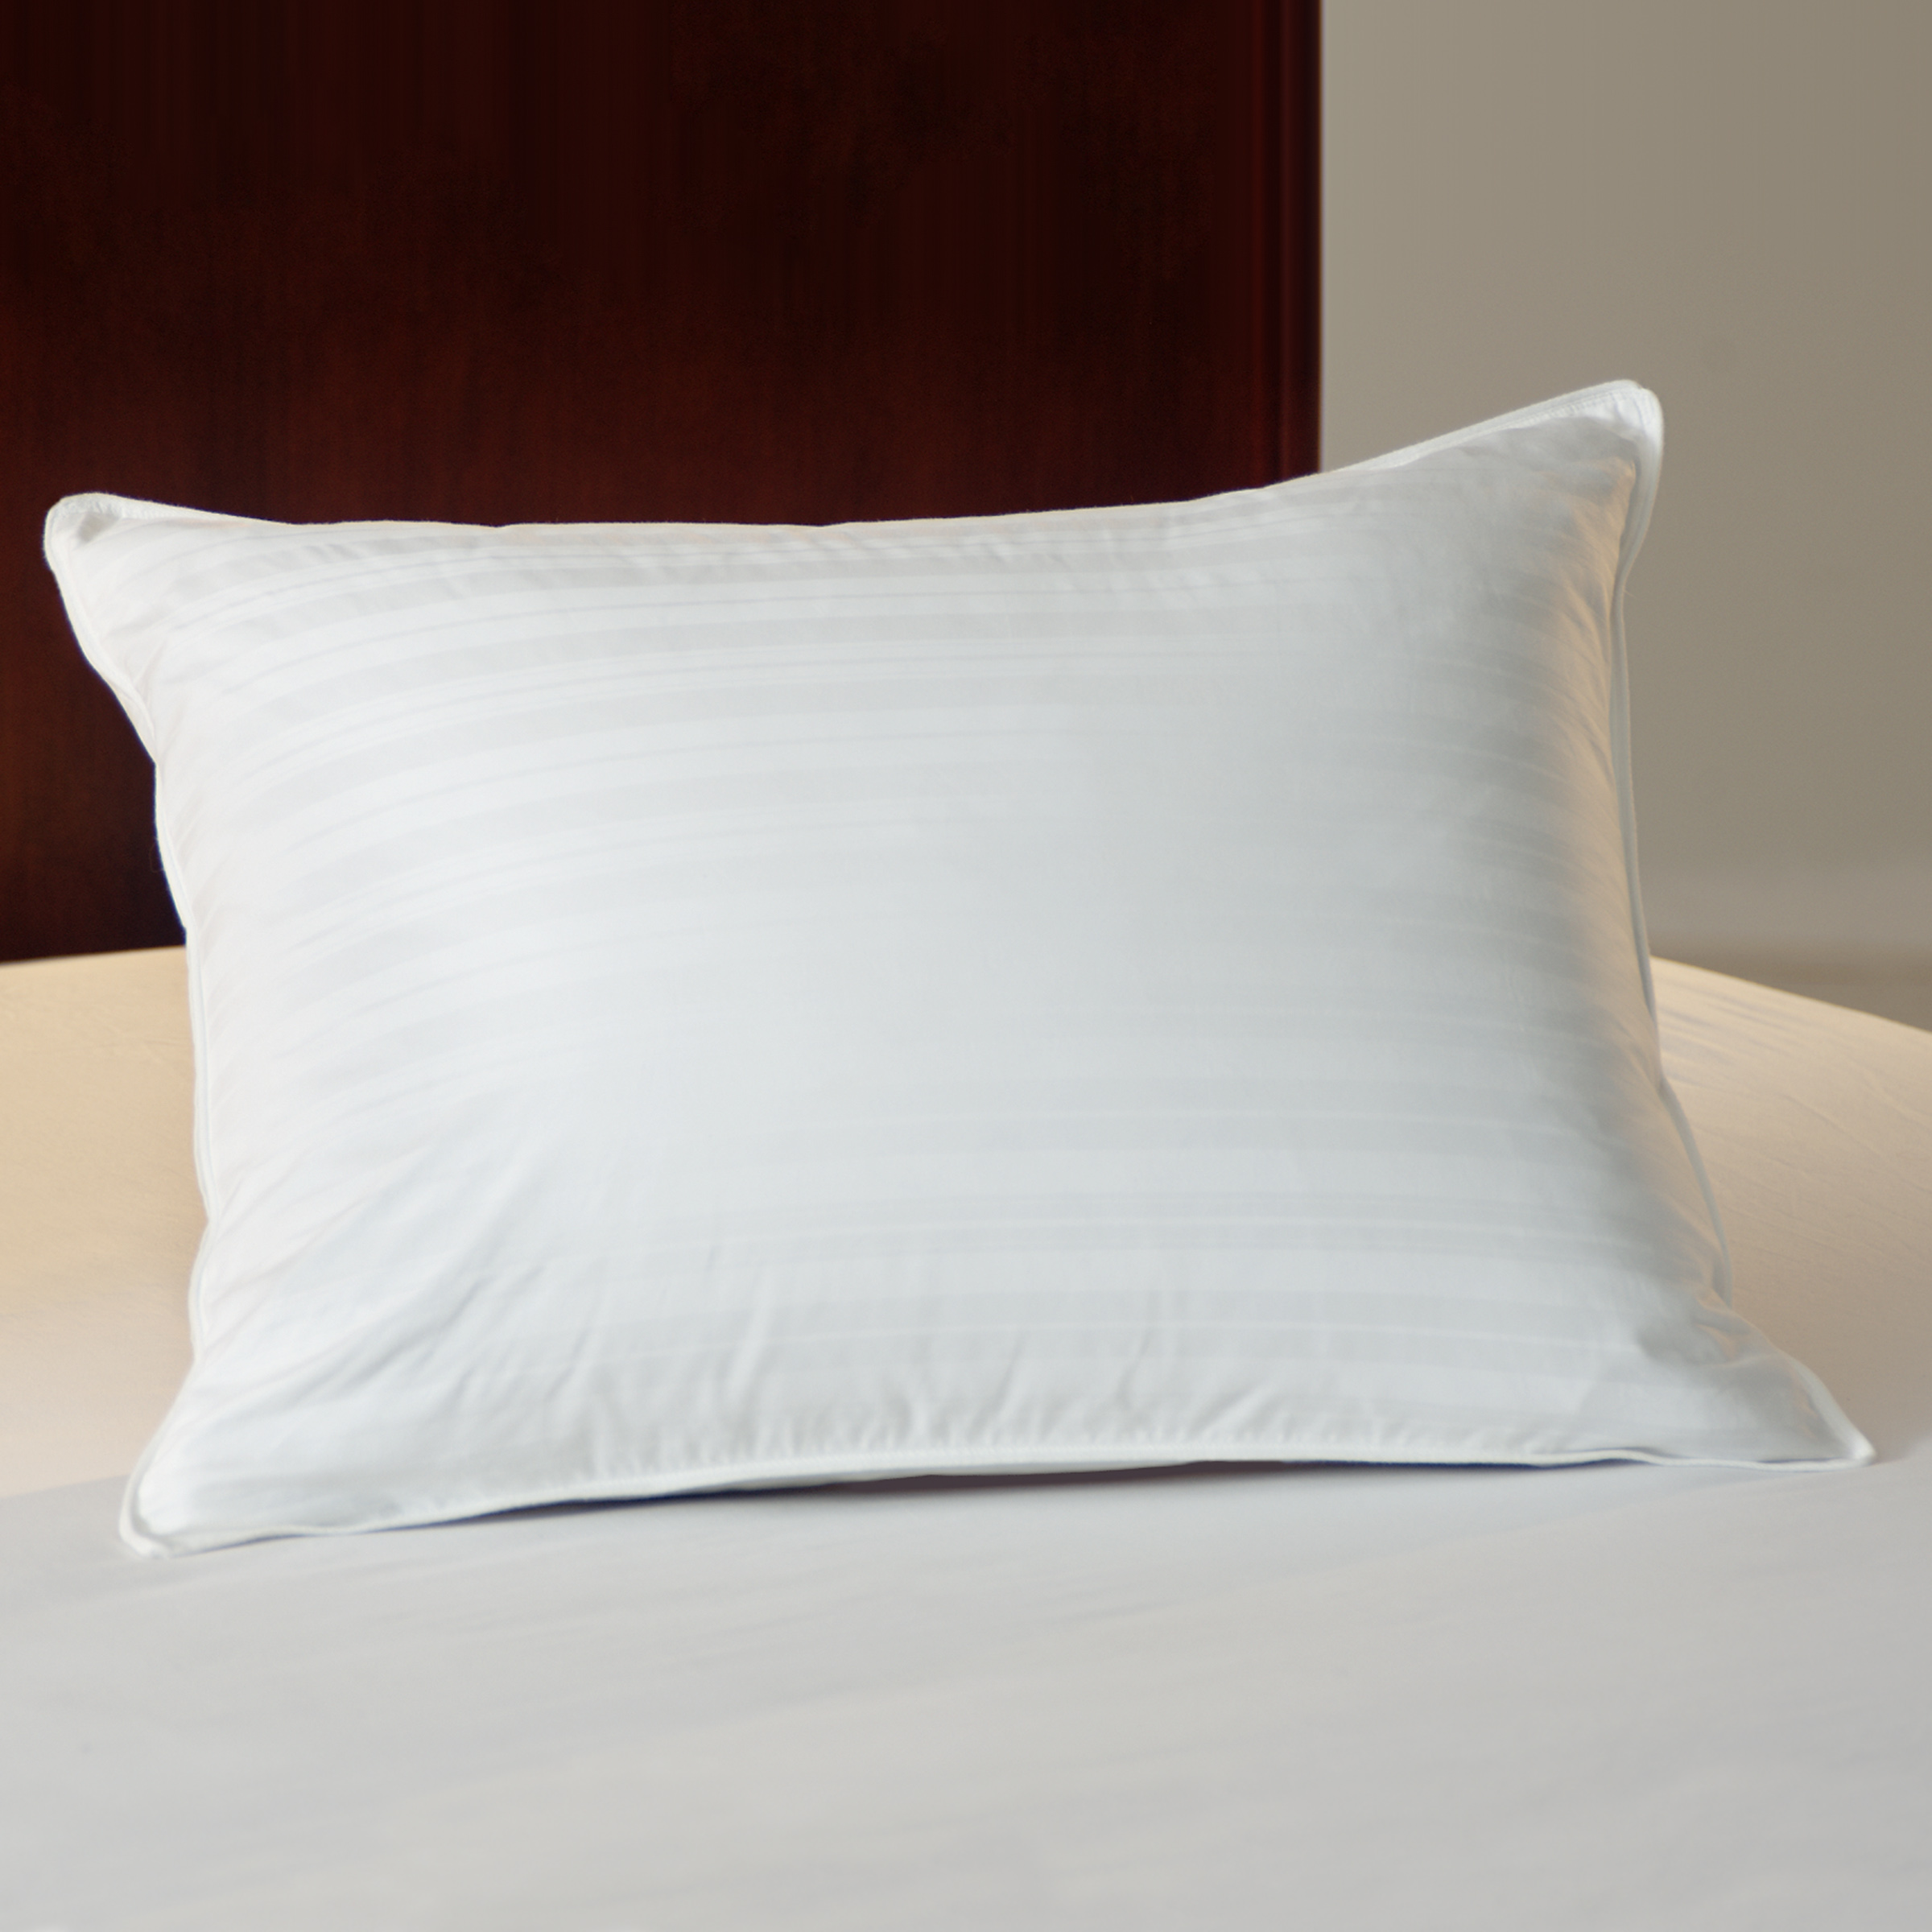 GoLinens: Pacific Coast Spring Air Affinity 400 thread count Supima Cotton Pillow (5 yrs US Manufacturer's Warranty)